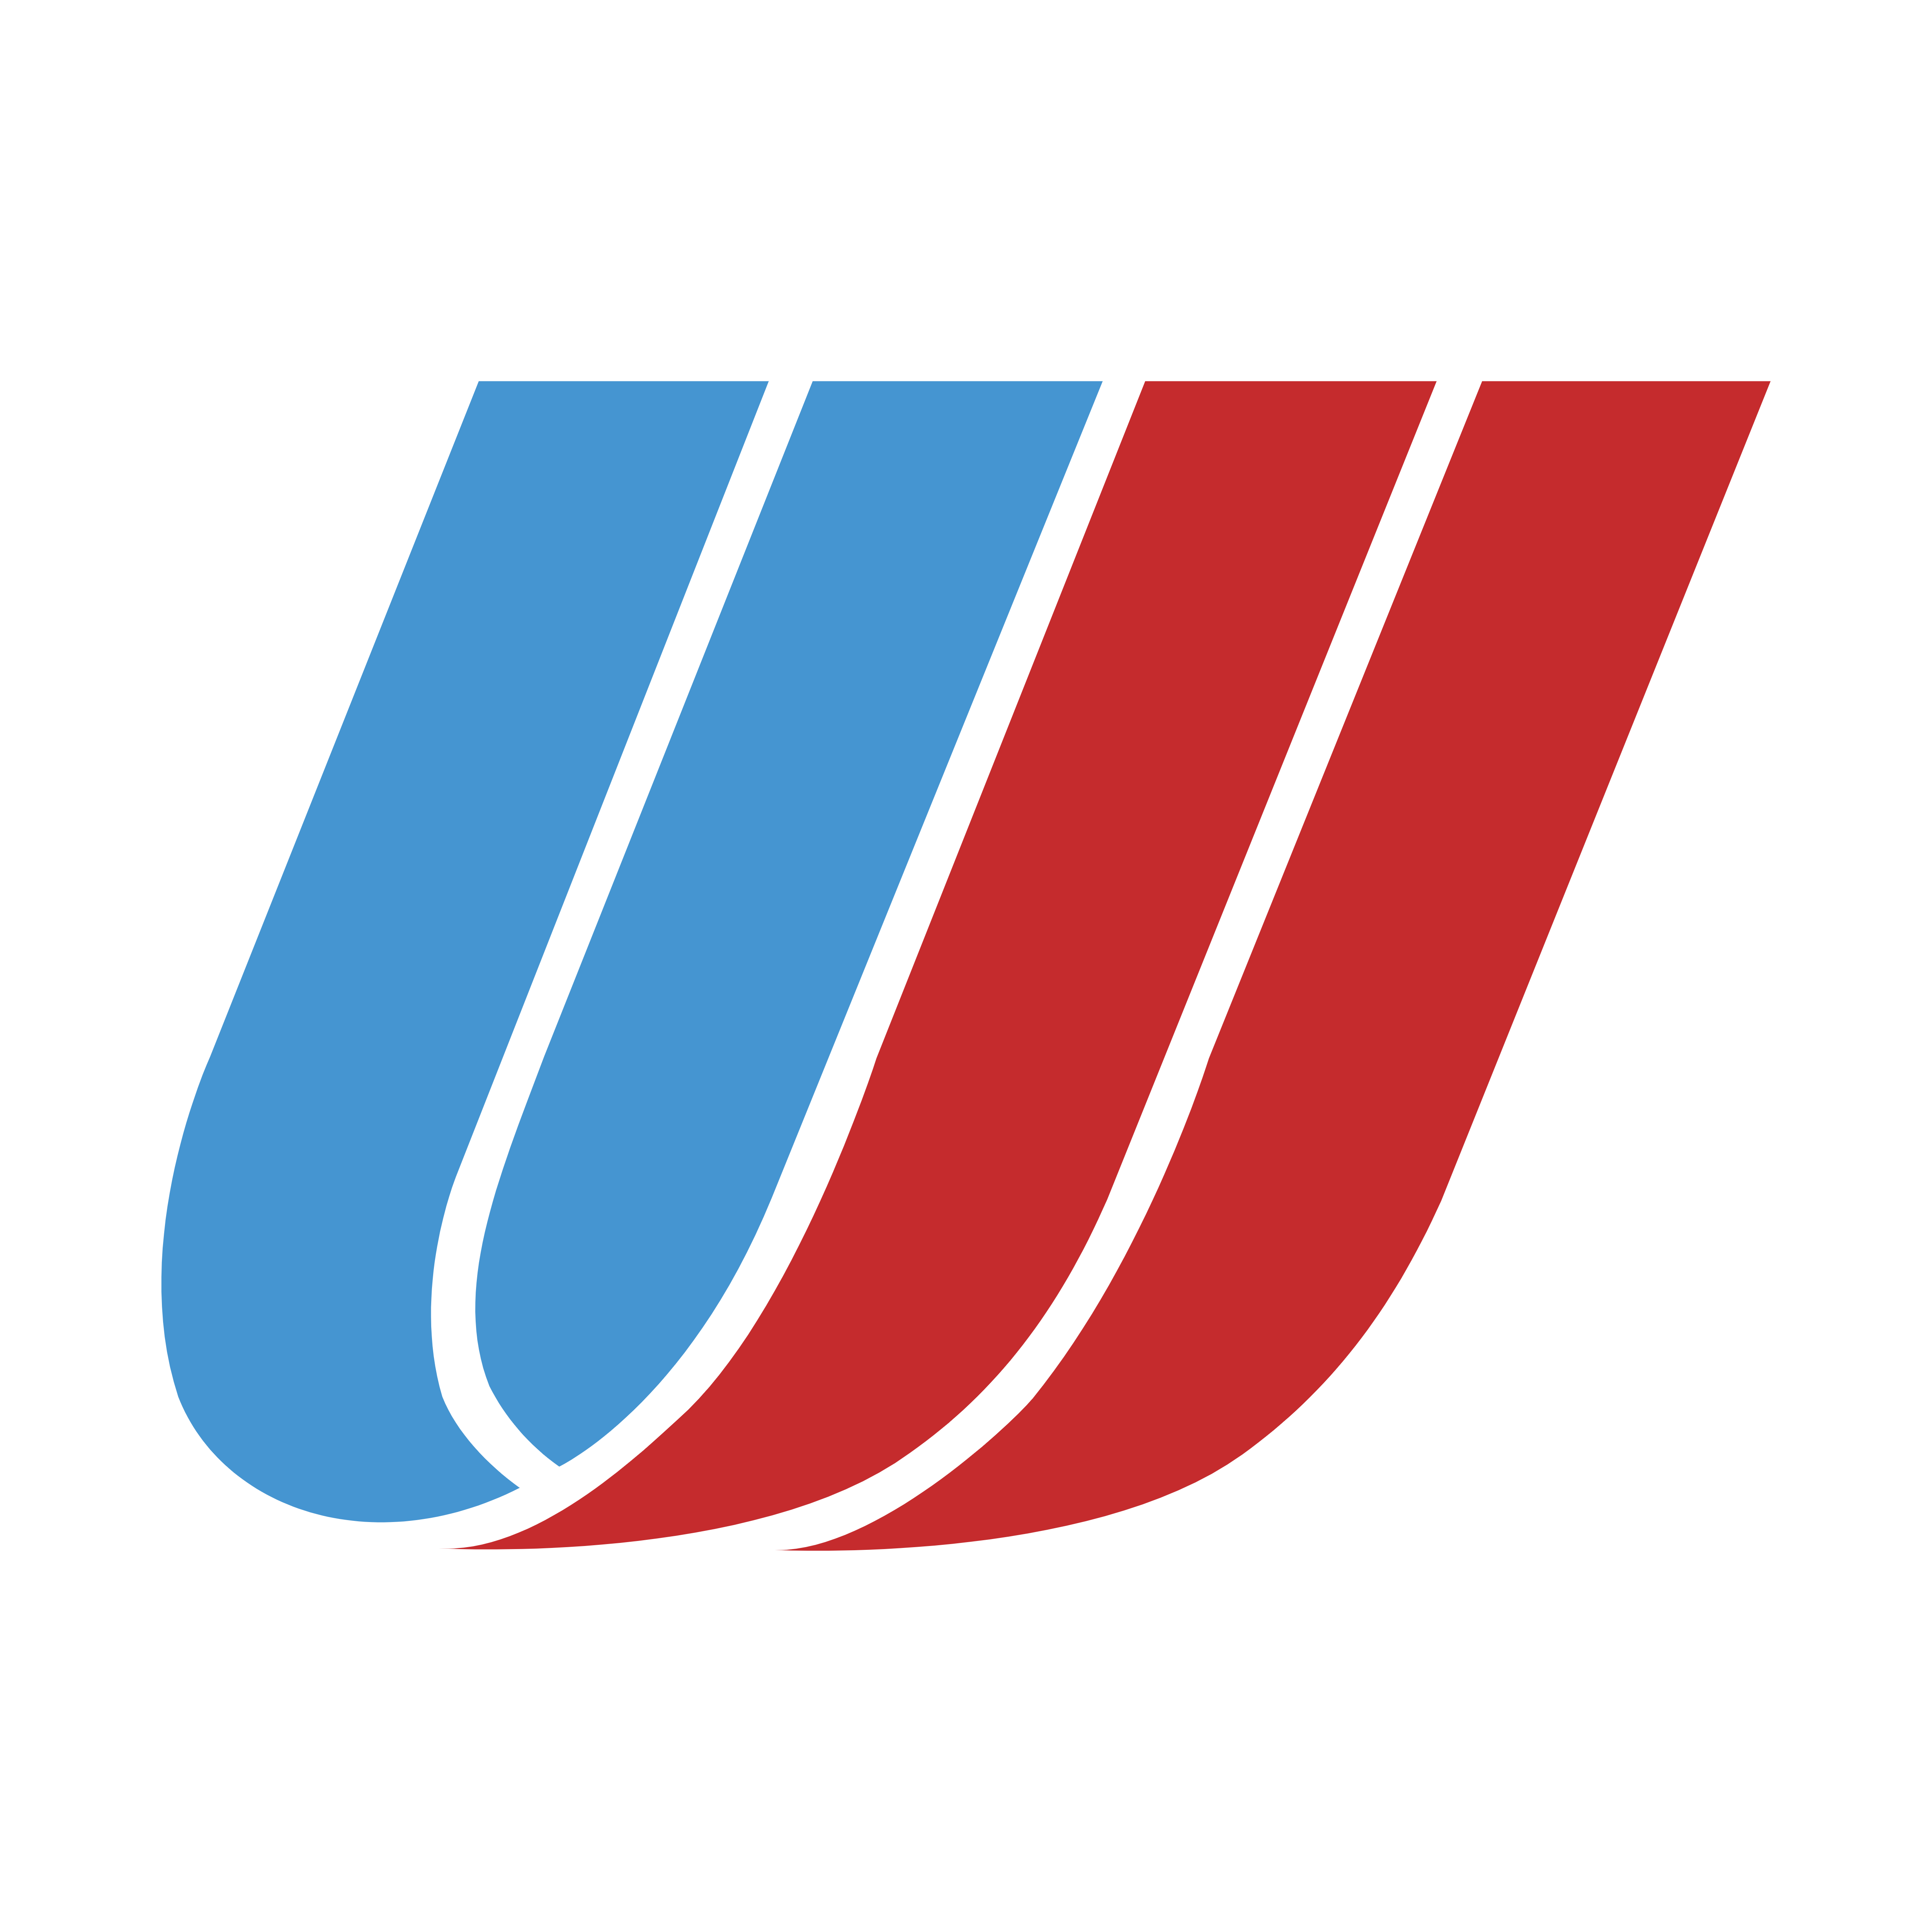 United Airlines Logo PNG - 176602